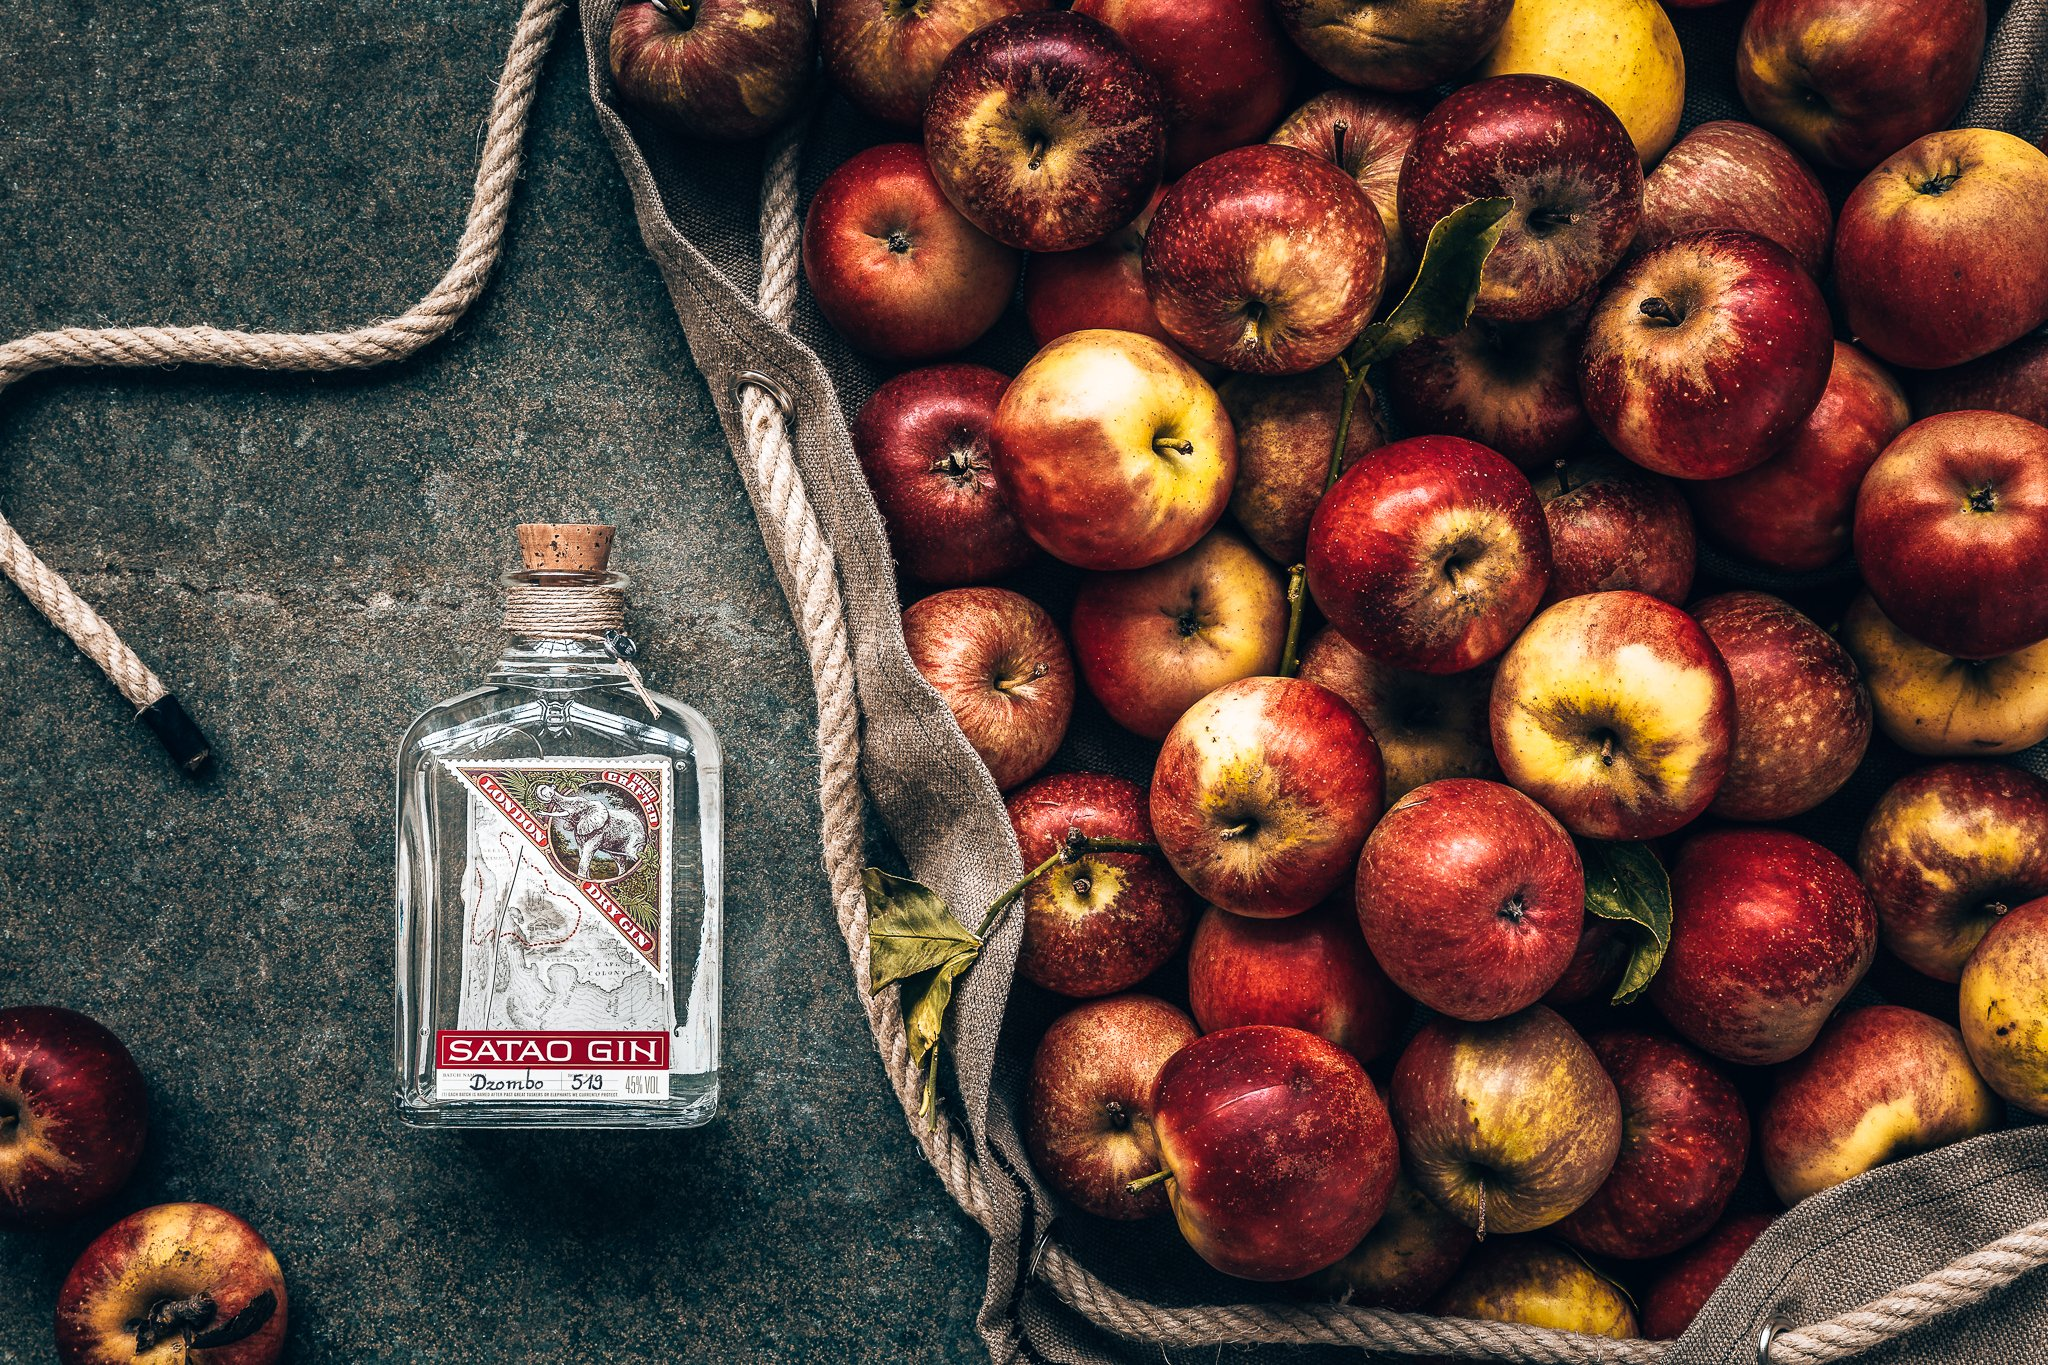 Satao gin, appels, Alles over gin.